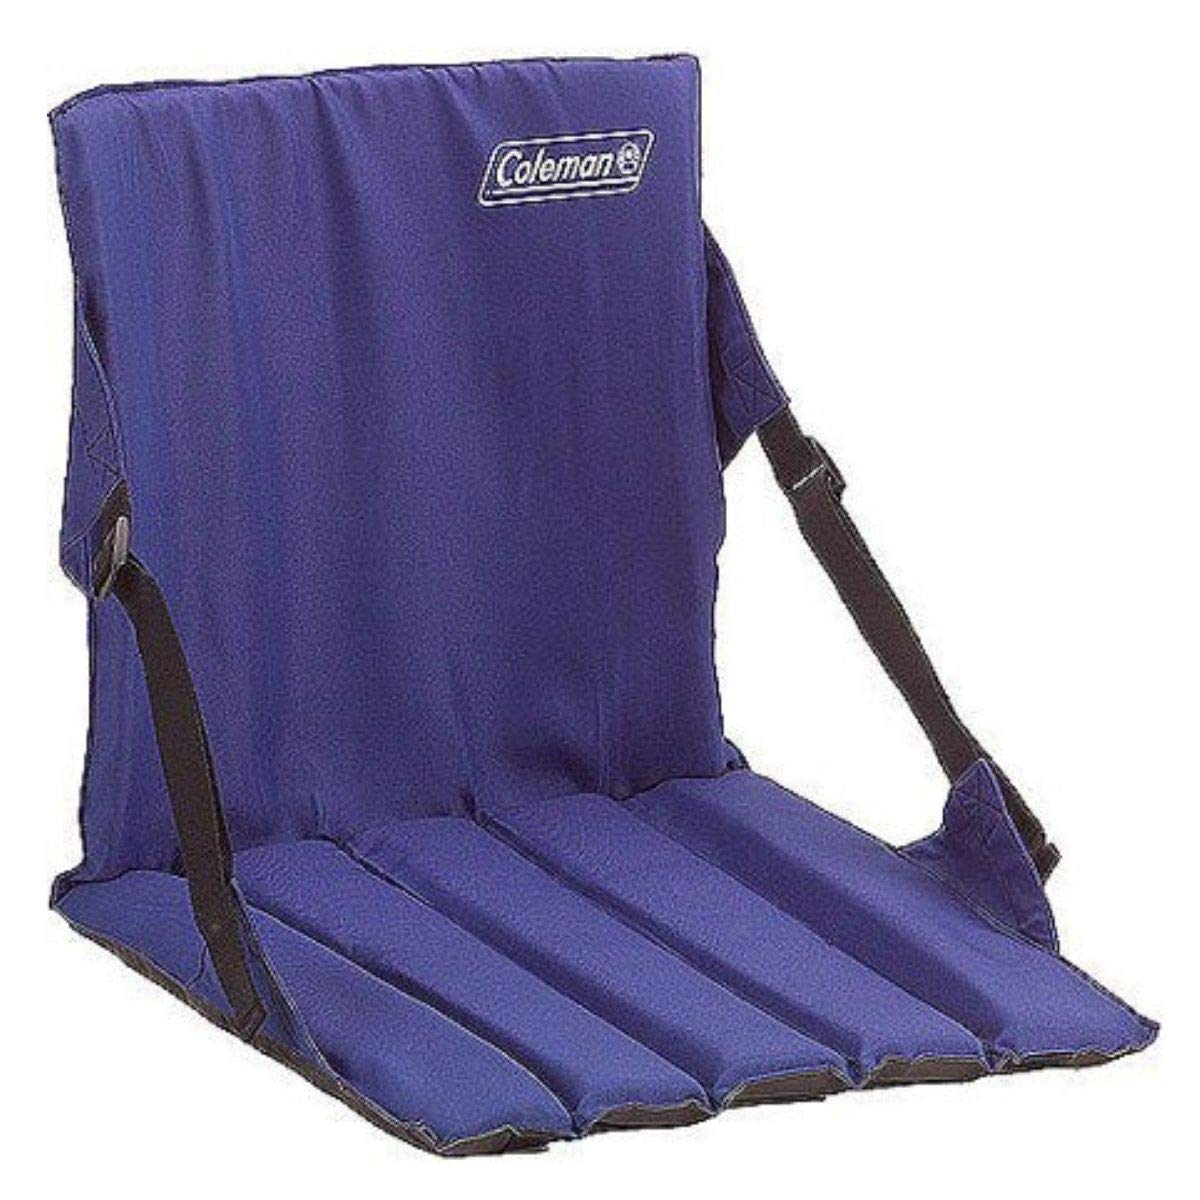 Coleman Portable Stadium Seat Padded Cushion with Backrest (Blue/Set of 4) by Coleman